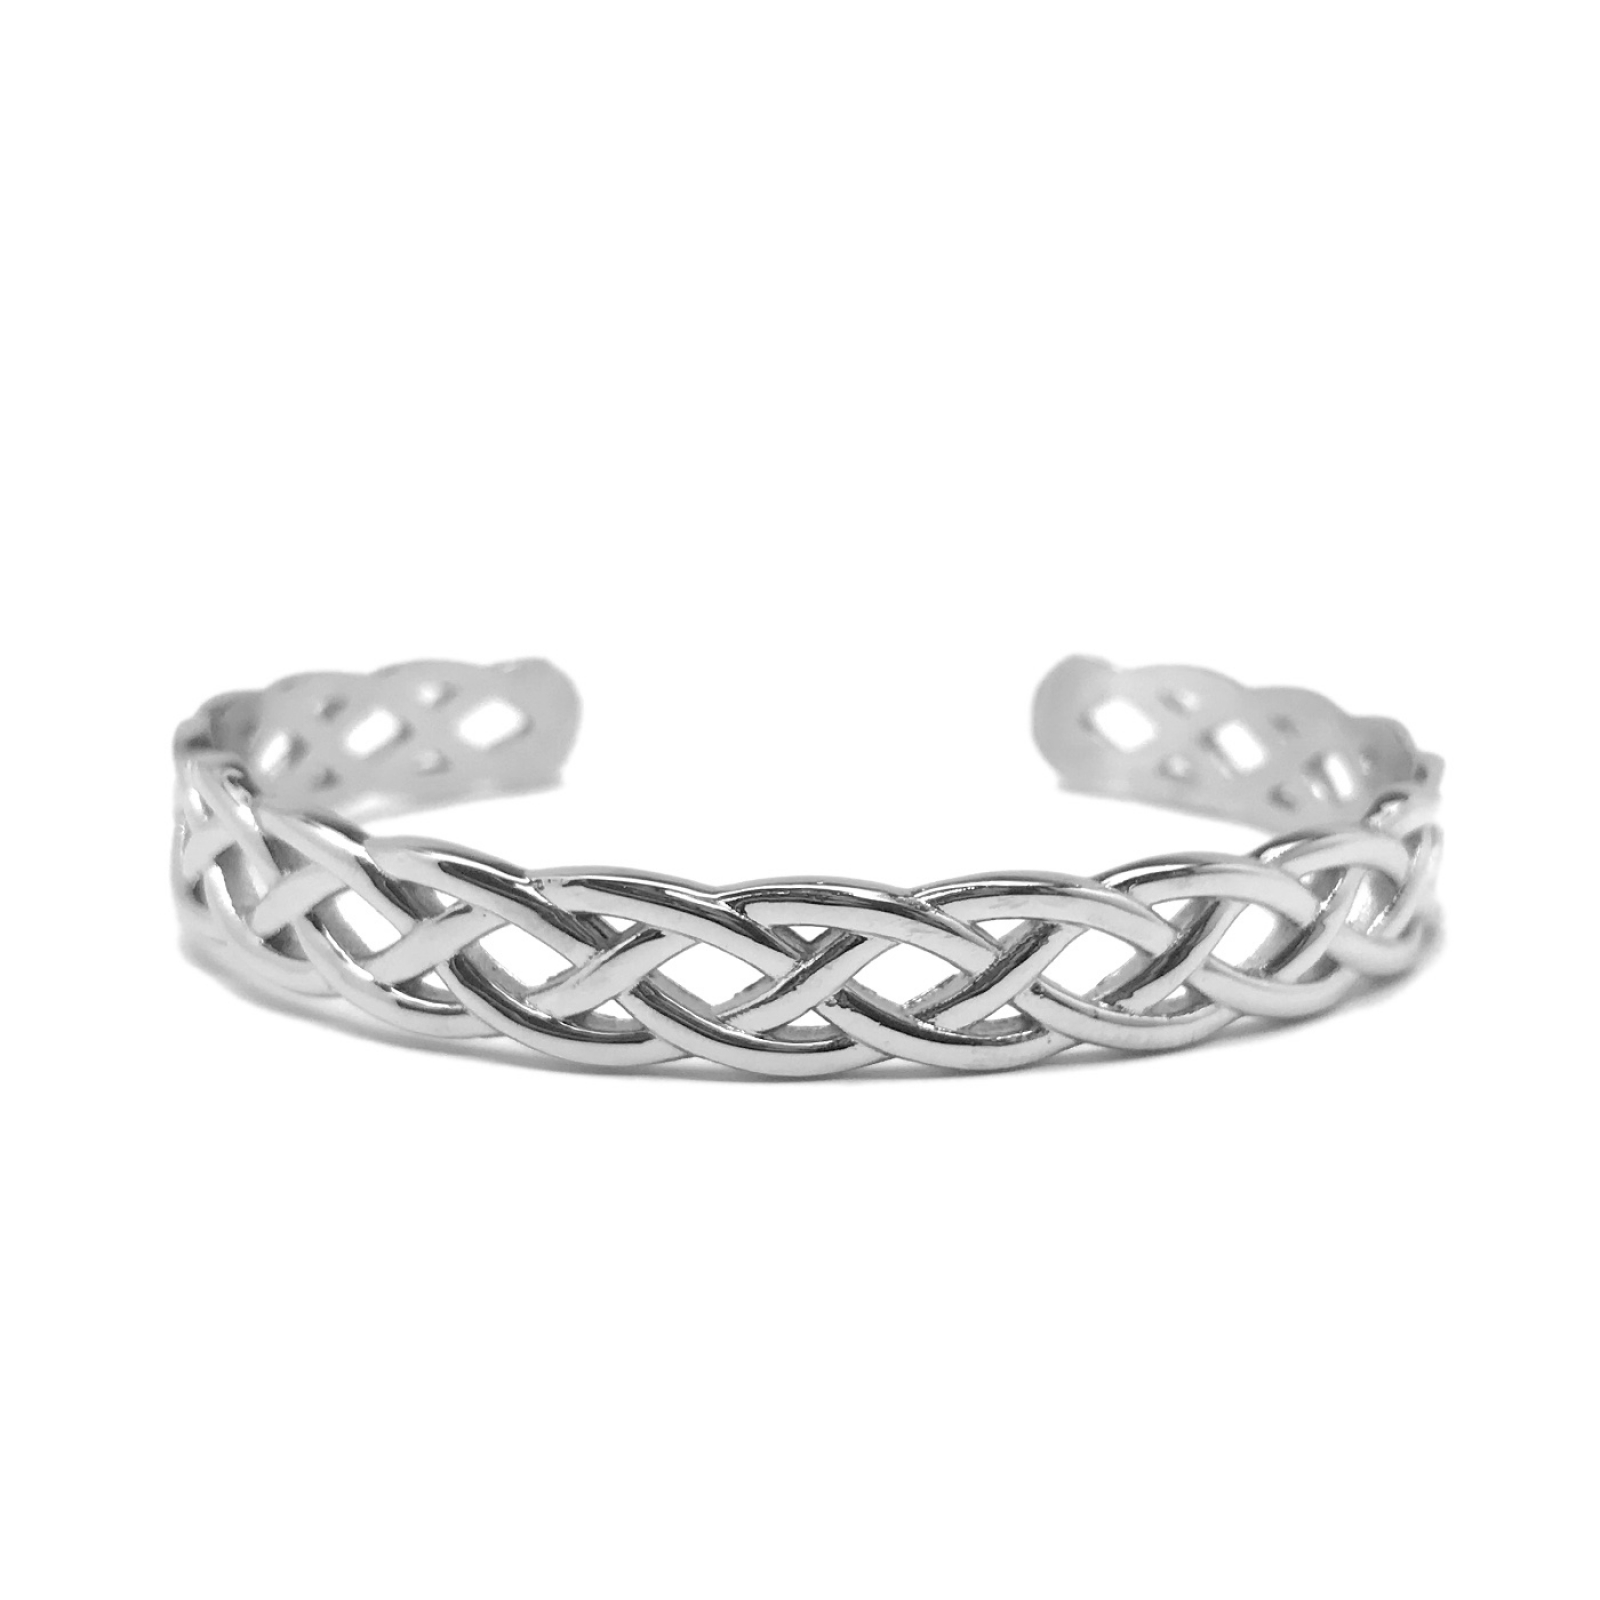 083f07f9fdf Braided Silver Stainless Steel Infinity Cuff Bangle Bracelet for Women